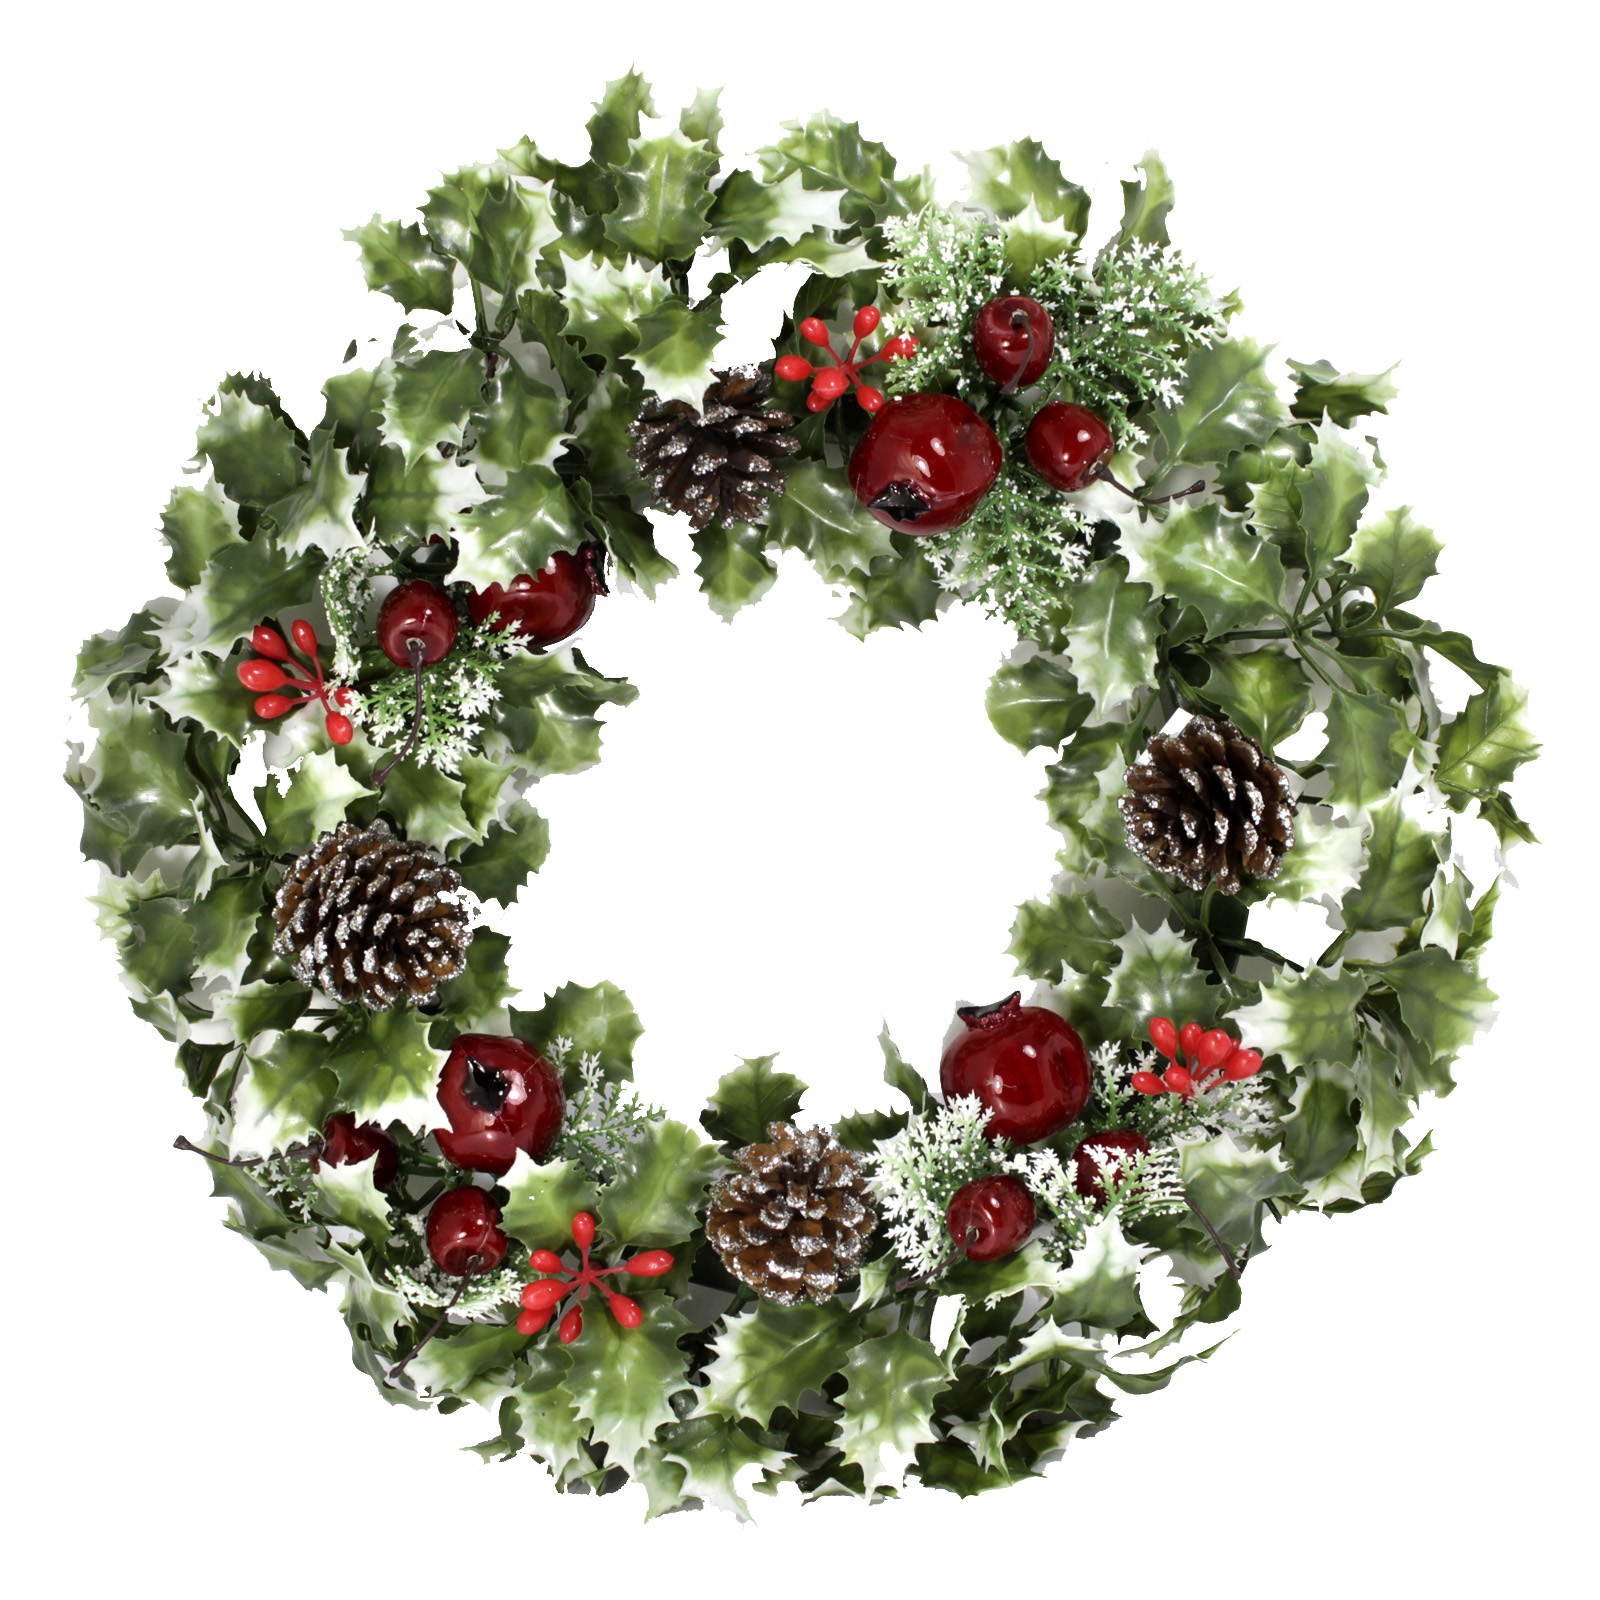 PLASTIC HOLLY WREATH LARGE POMEGRANITE VARIEGATED 18 INCH